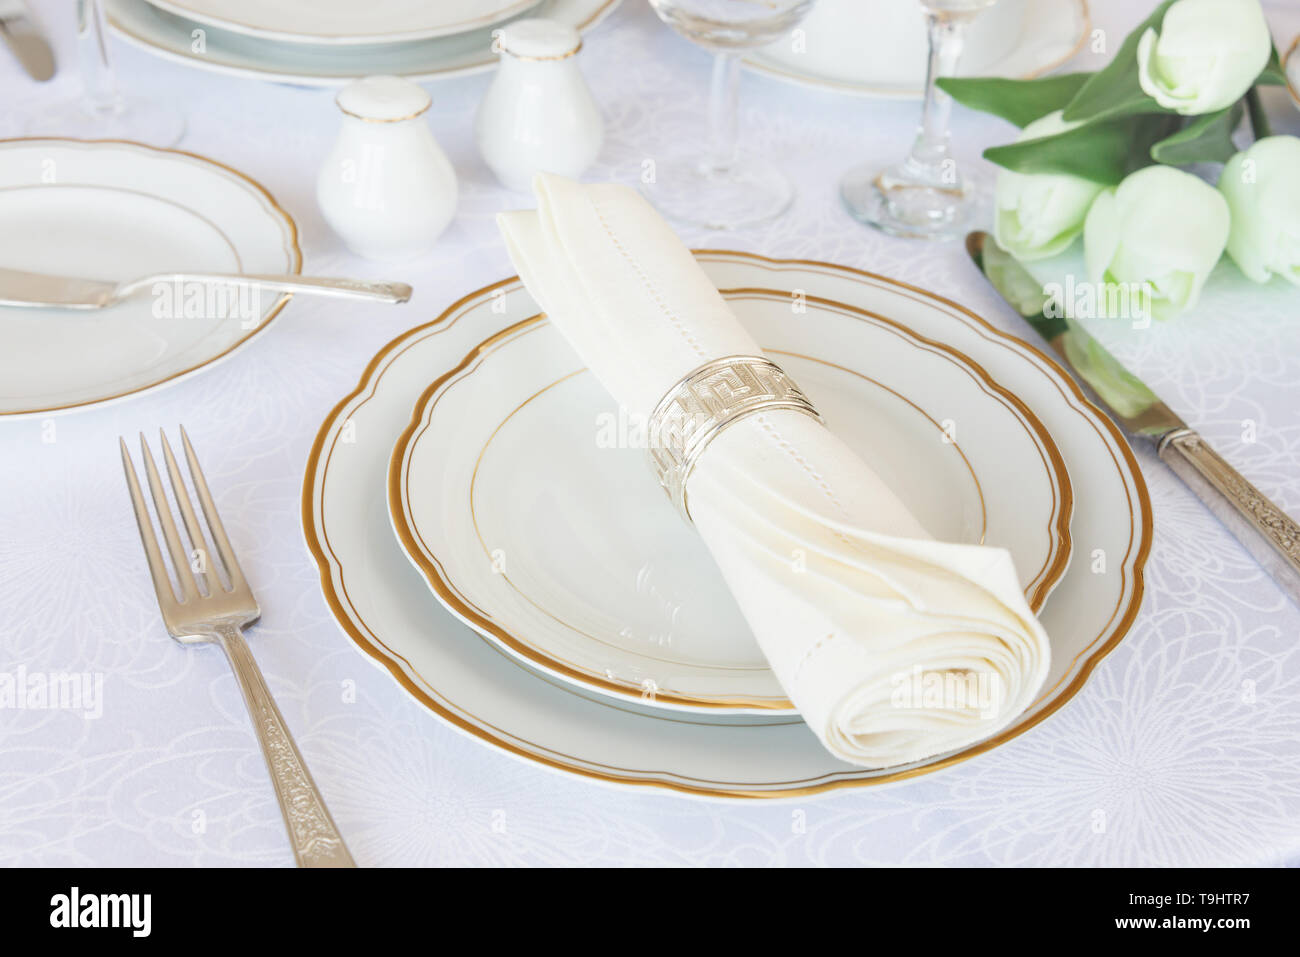 Classic serving for a gala dinner with luxurious porcelain, silverware and tulip flowers on a white tablecloth Stock Photo